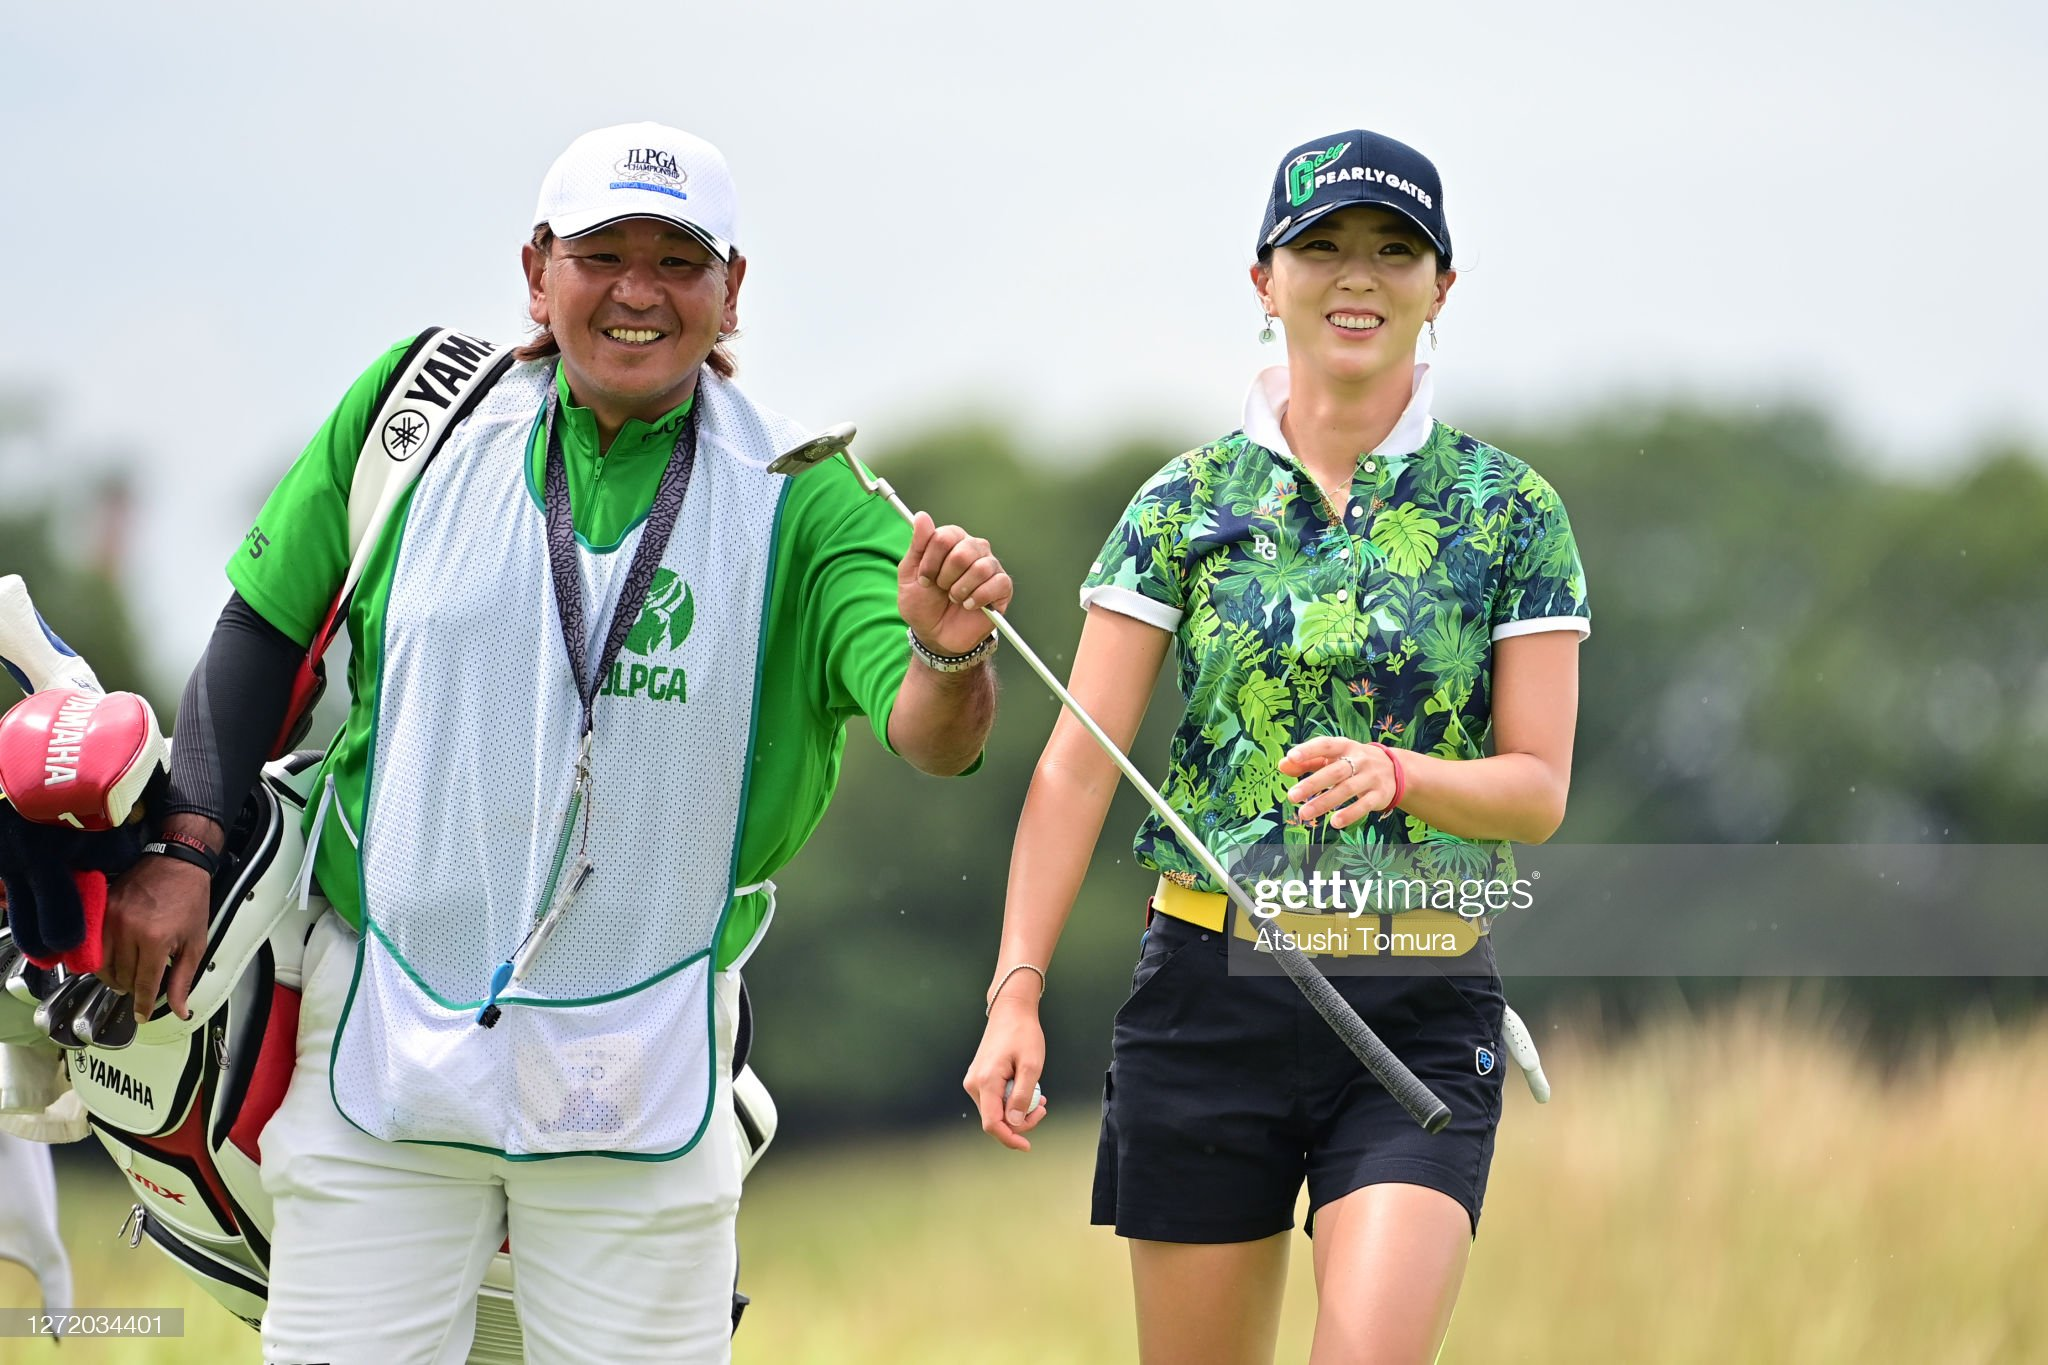 https://media.gettyimages.com/photos/chaeyoung-yoon-of-south-korea-smiles-on-the-6th-green-during-the-of-picture-id1272034401?s=2048x2048